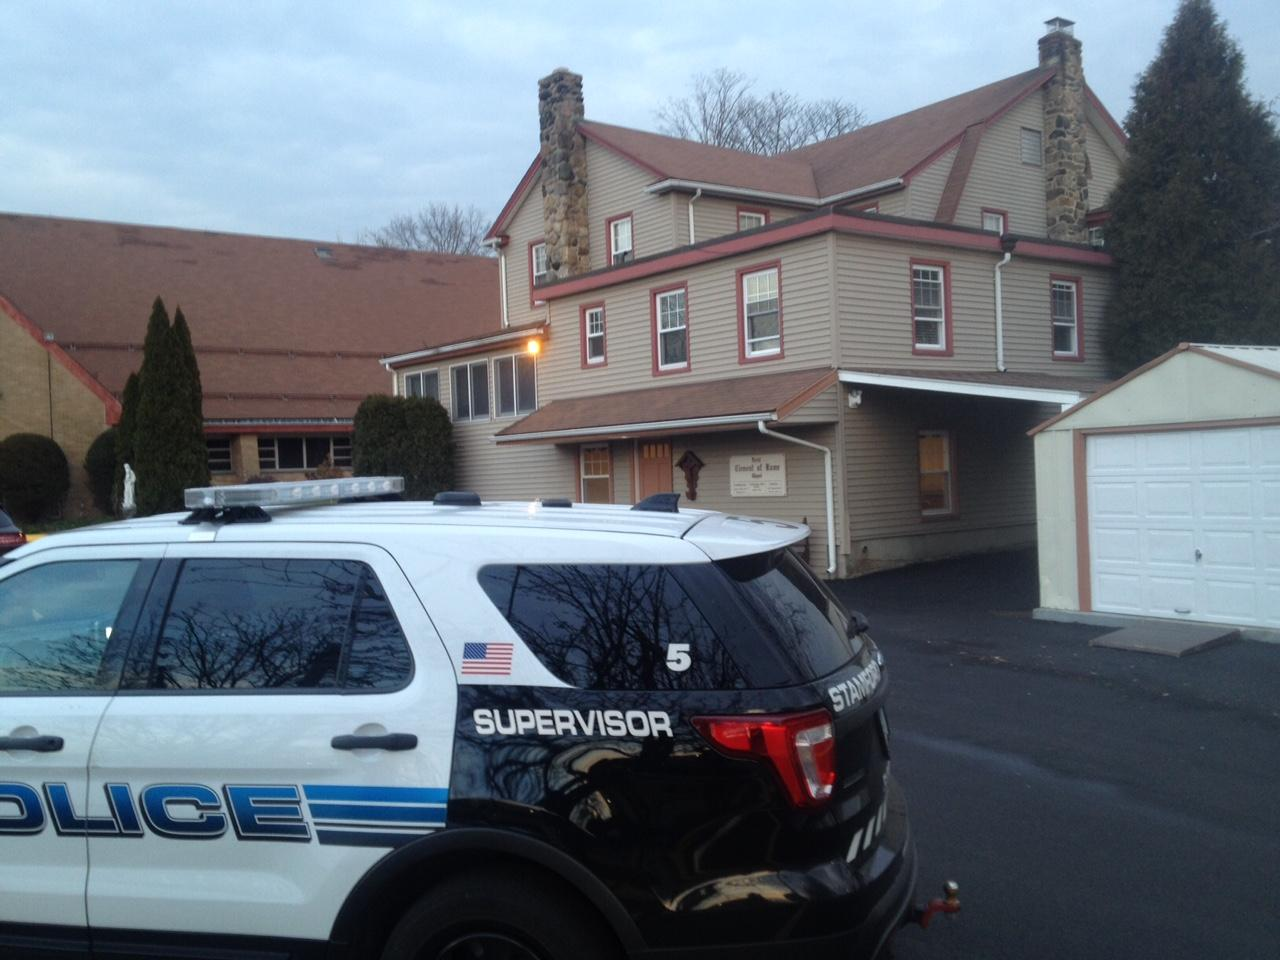 Police: Naked woman high on drugs before Stamford church